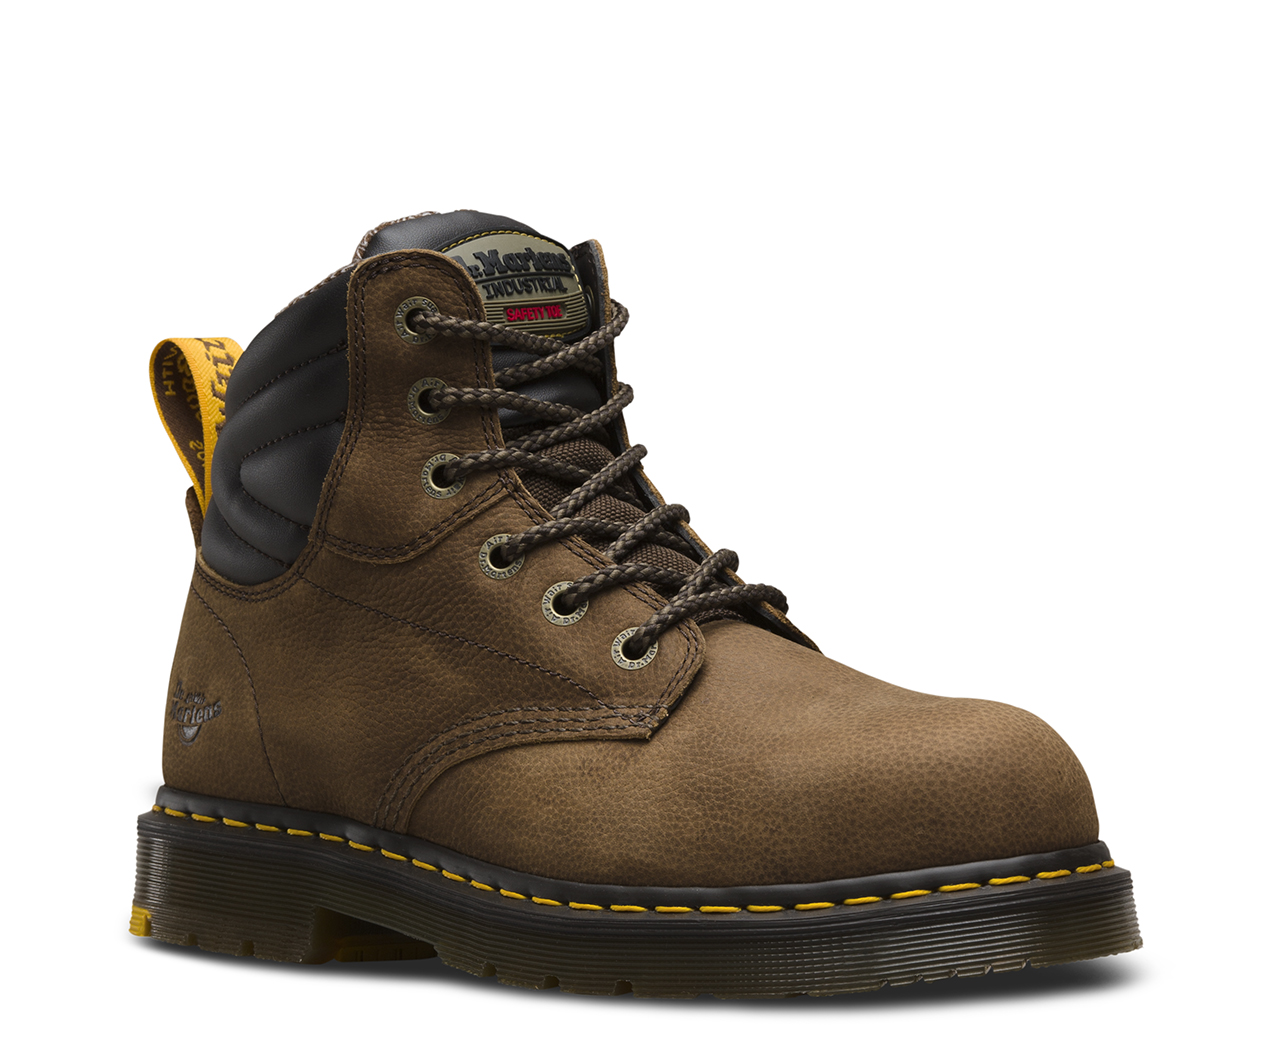 HYNINE STEEL TOE New Arrivals Official Dr Martens Store